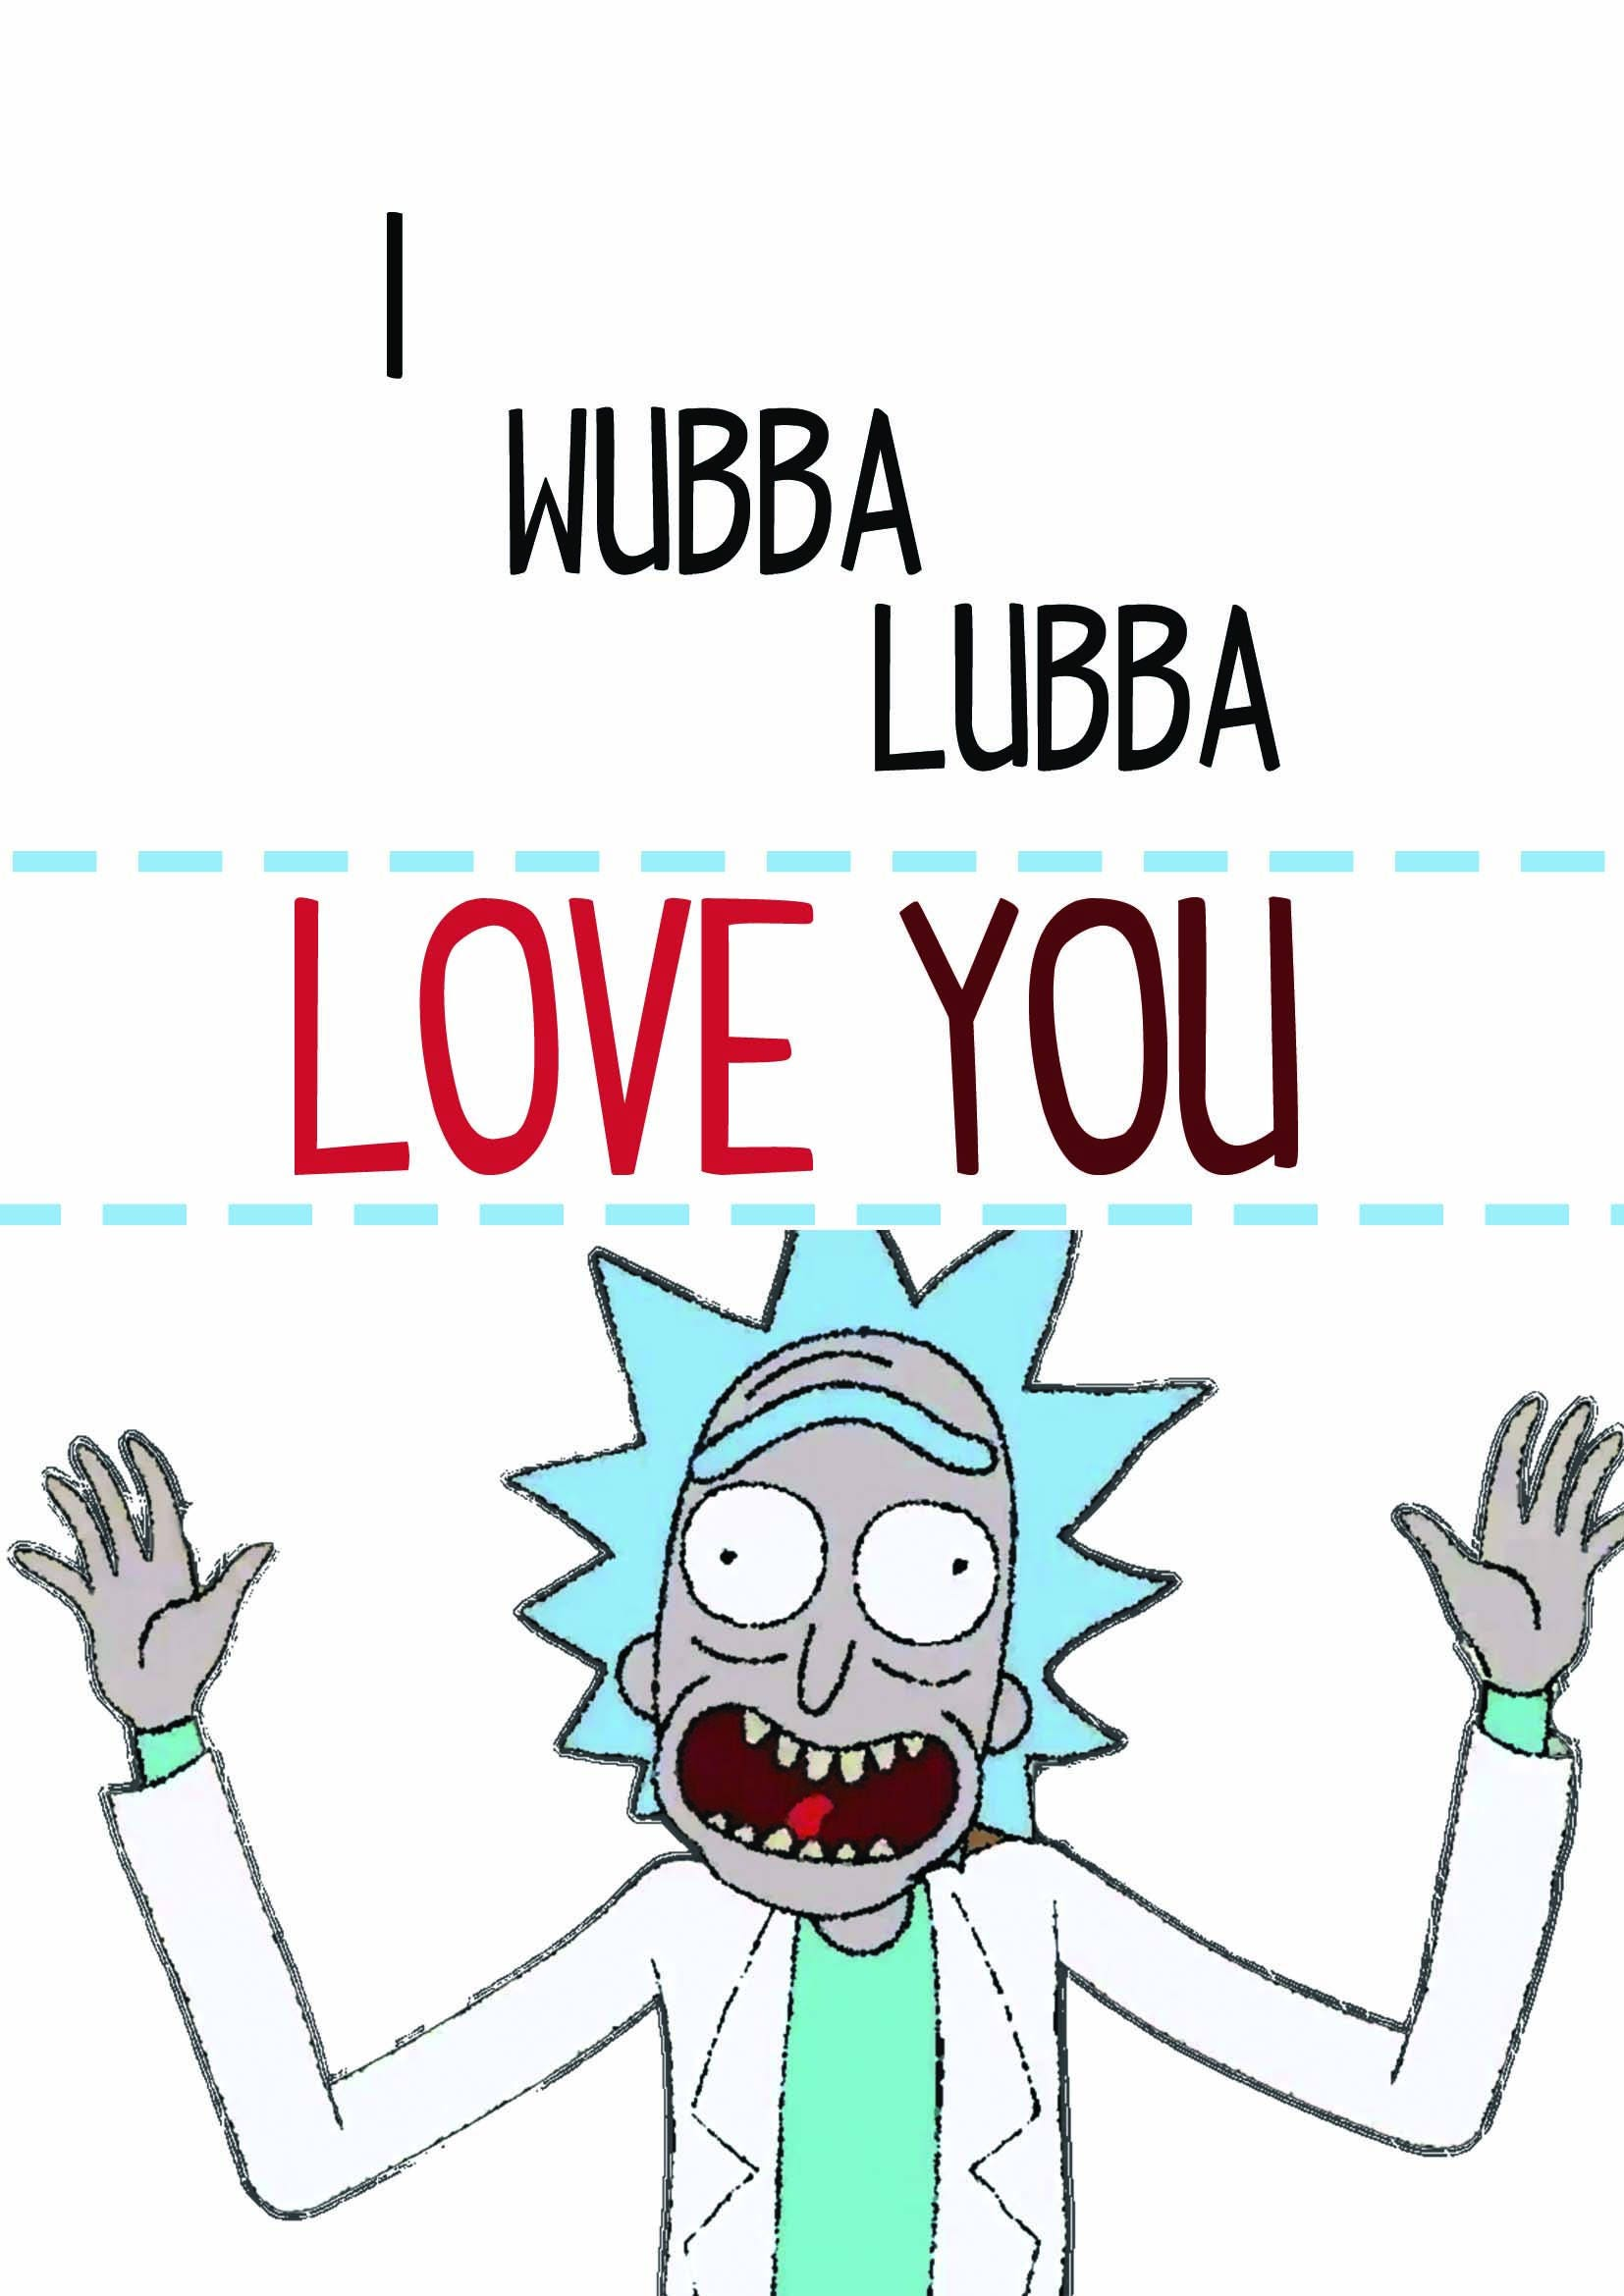 Rick morty wubba lubba love you birthday or anniversary card cute rick morty wubba lubba love you birthday or anniversary card cute card lovely bookmarktalkfo Image collections